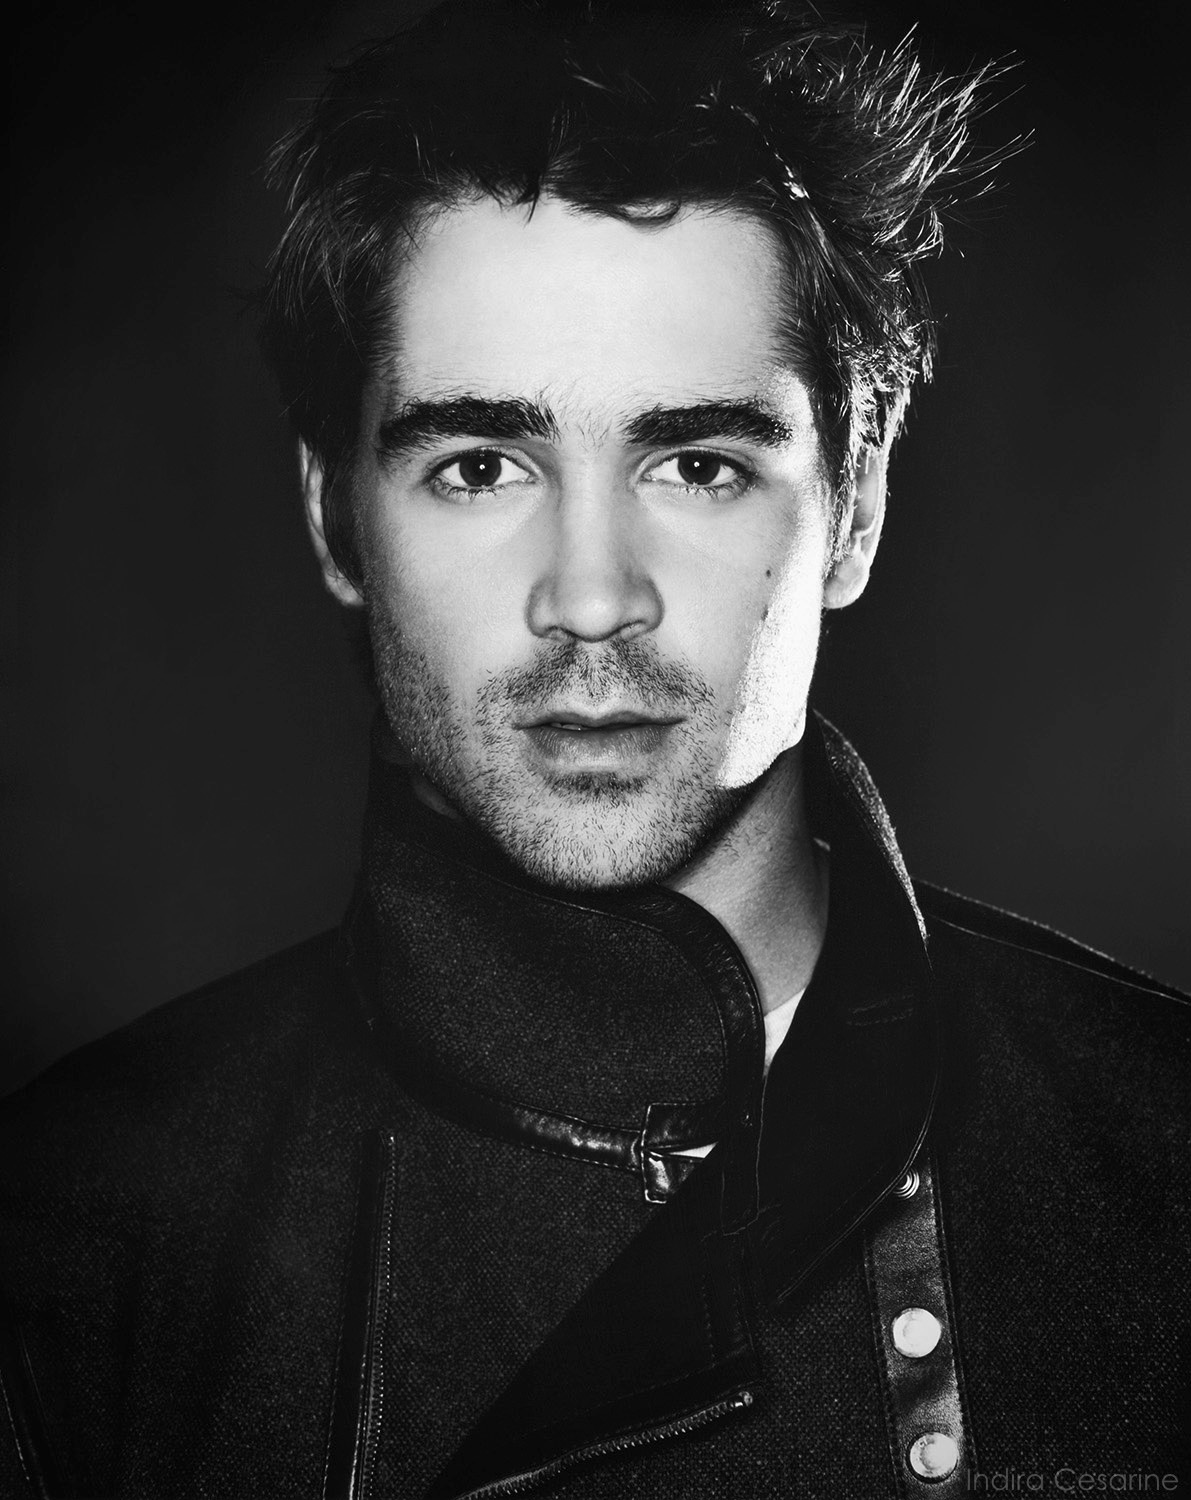 COLIN-FARRELL-Photography-by-Indira-Cesarine-005-X4.jpg